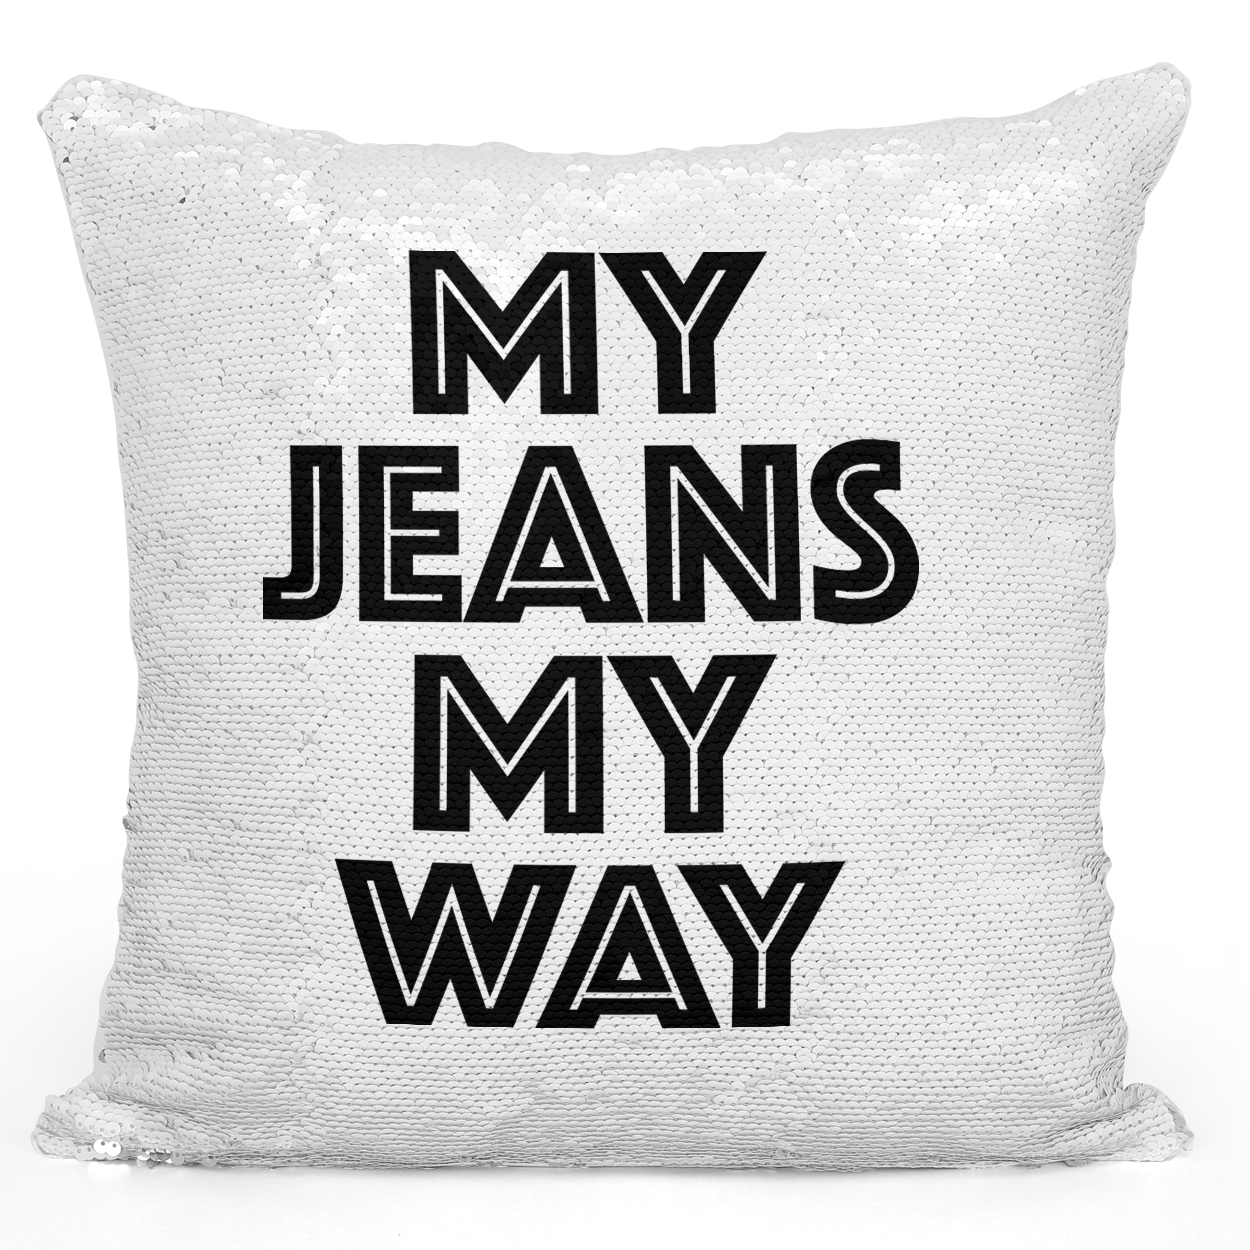 Sequin Pillow Magic Mermaid Throw Pillow My Jeans My Way - Premium 100% Polyester 16 x 16 inch Square Modern Livingroom Decorative Pillow Loud Universe